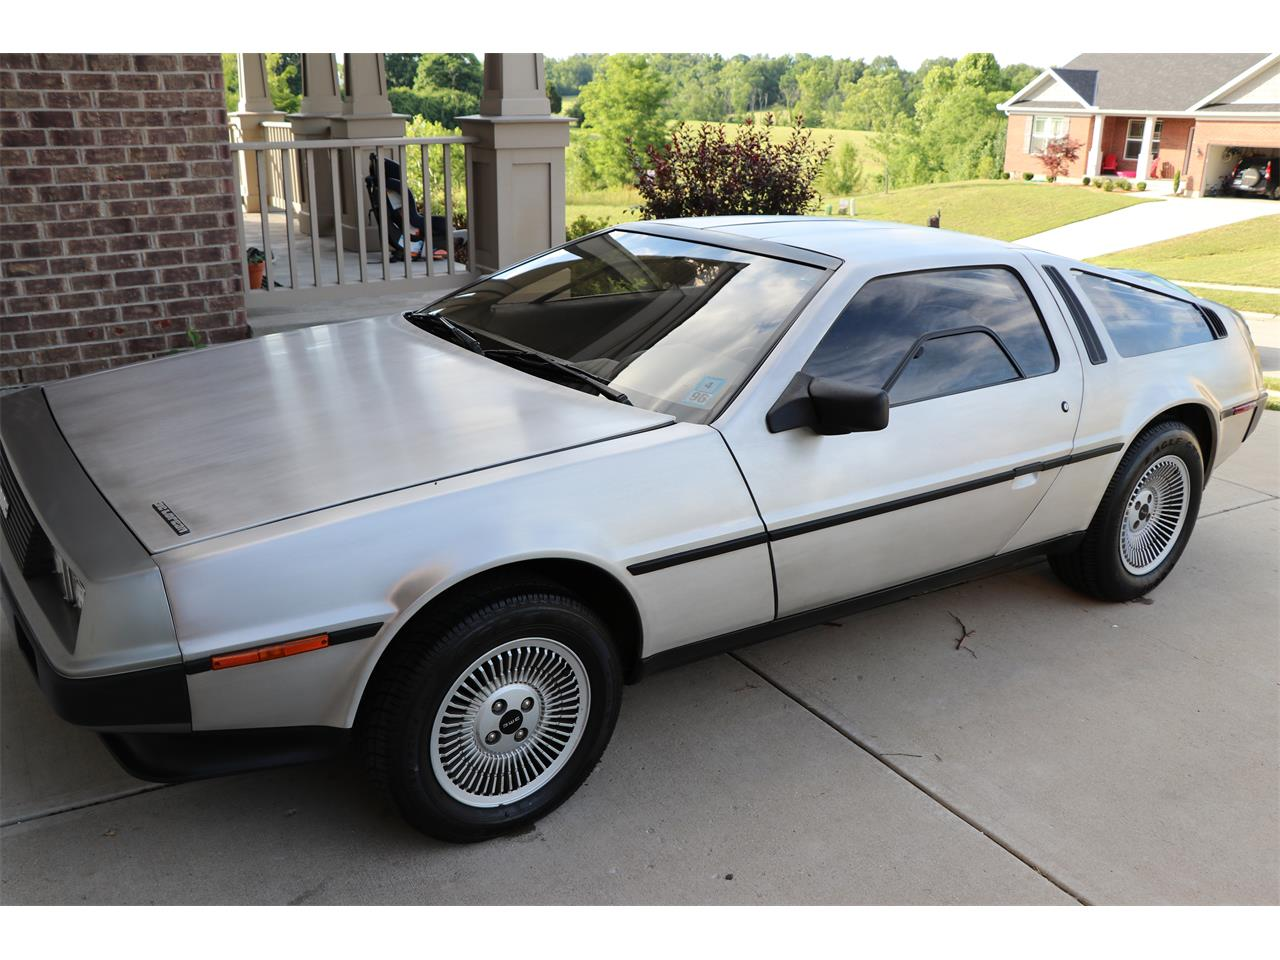 1982 DeLorean DMC-12 (CC-1105349) for sale in Covington, Kentucky